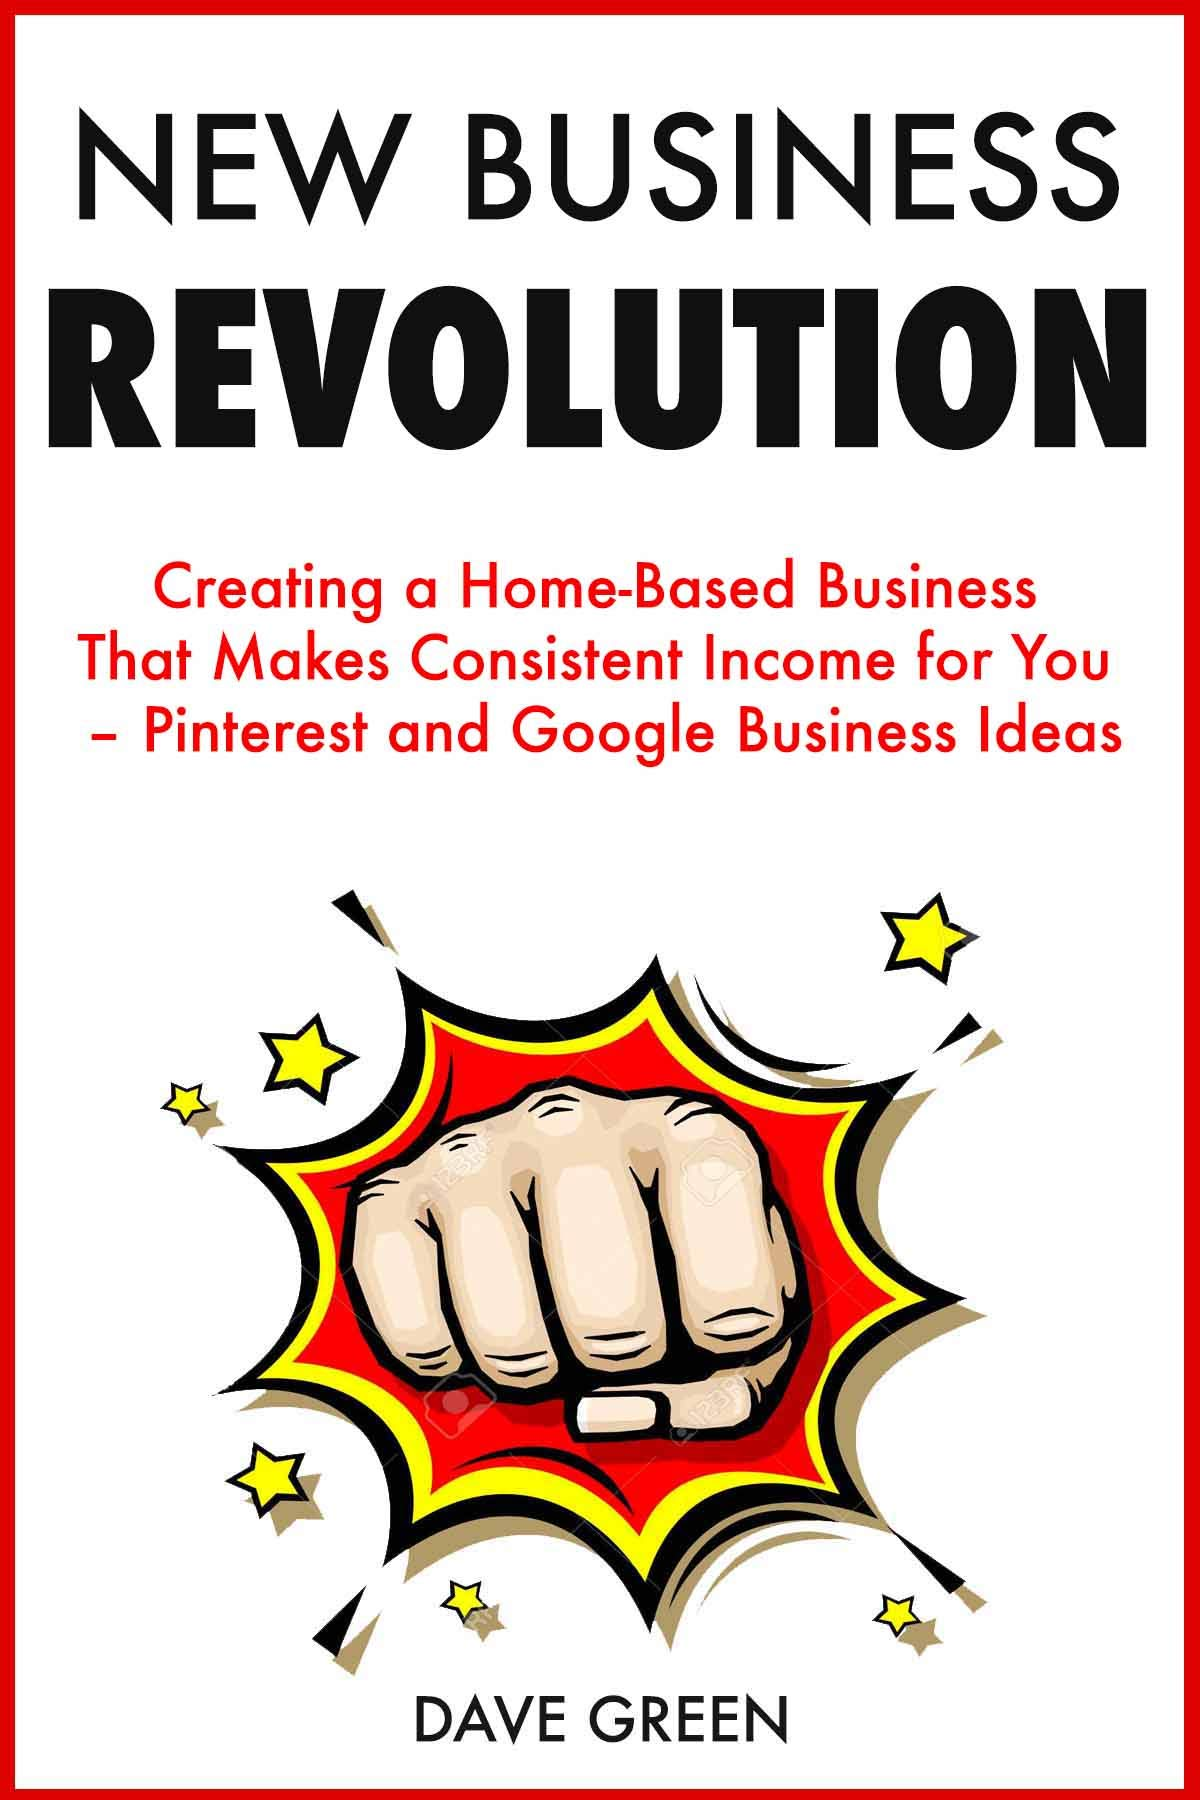 New Business Revolution: Creating a Home-Based Business That Makes Consistent Income for You – Pinterest and Google Business Ideas